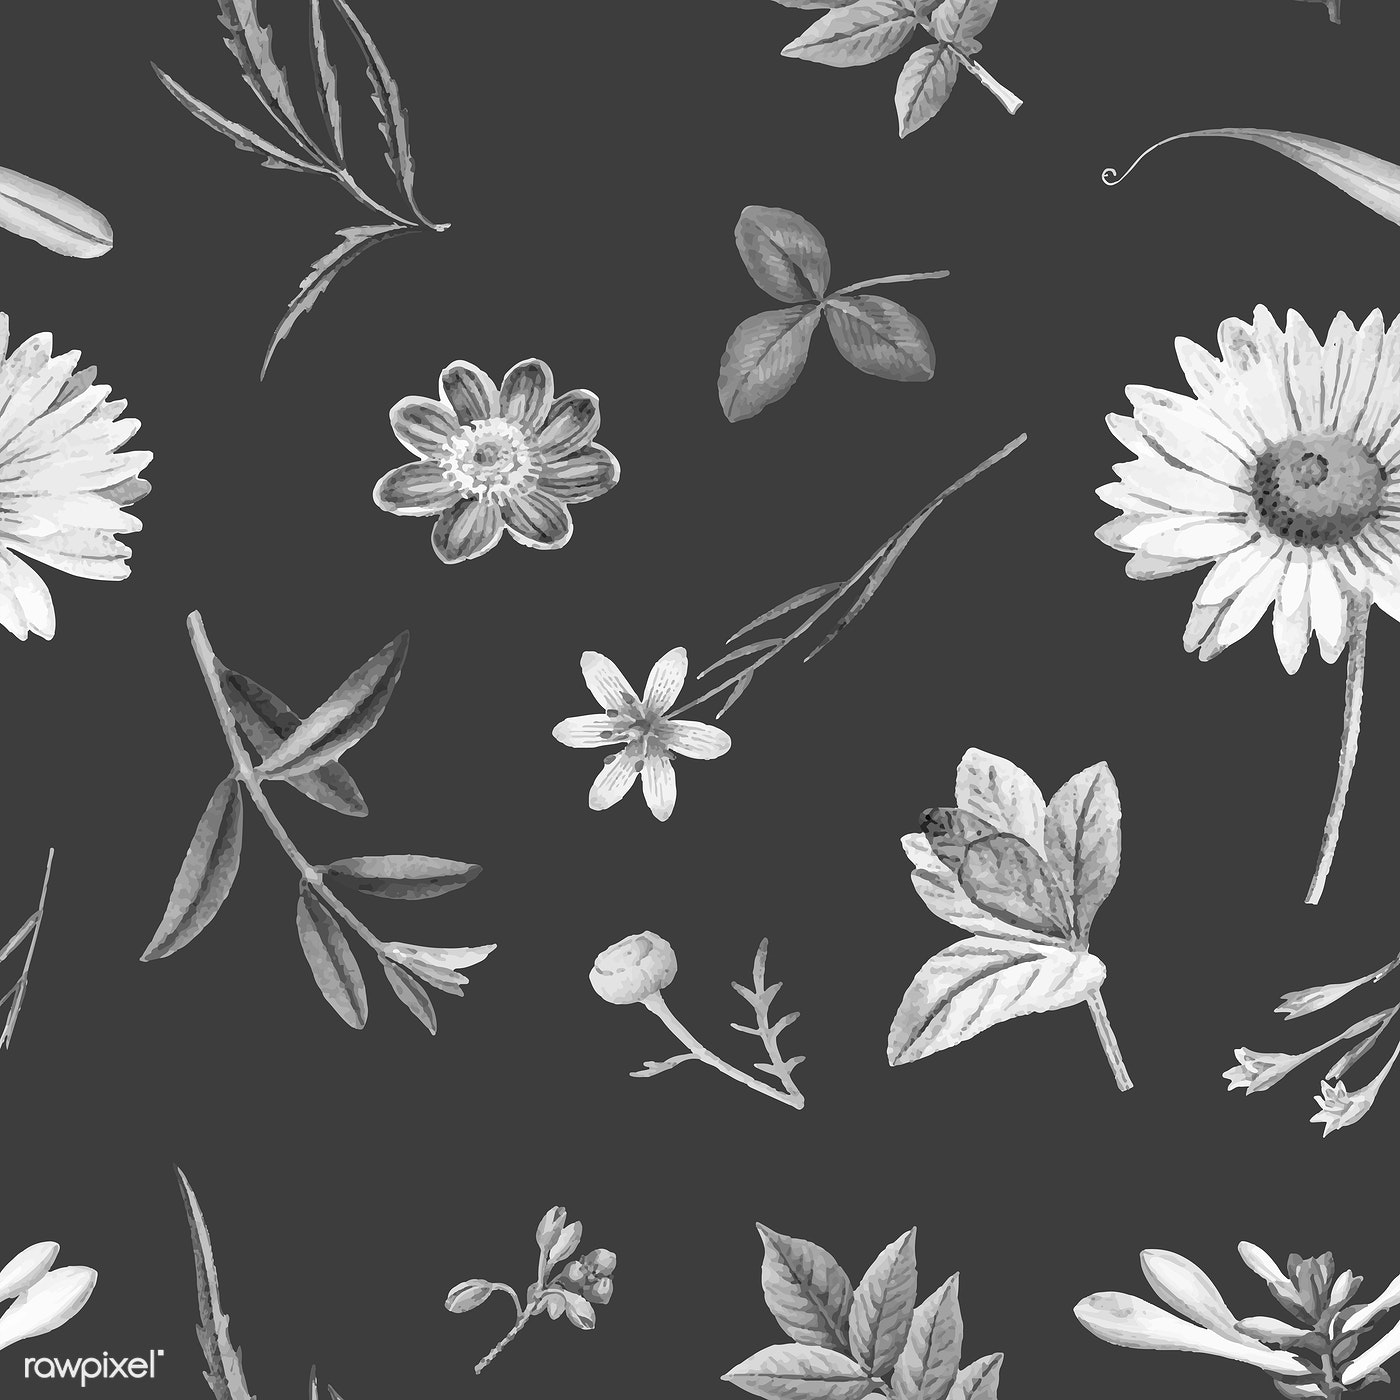 Floral Background Illustration Royalty Free Vector 1201085